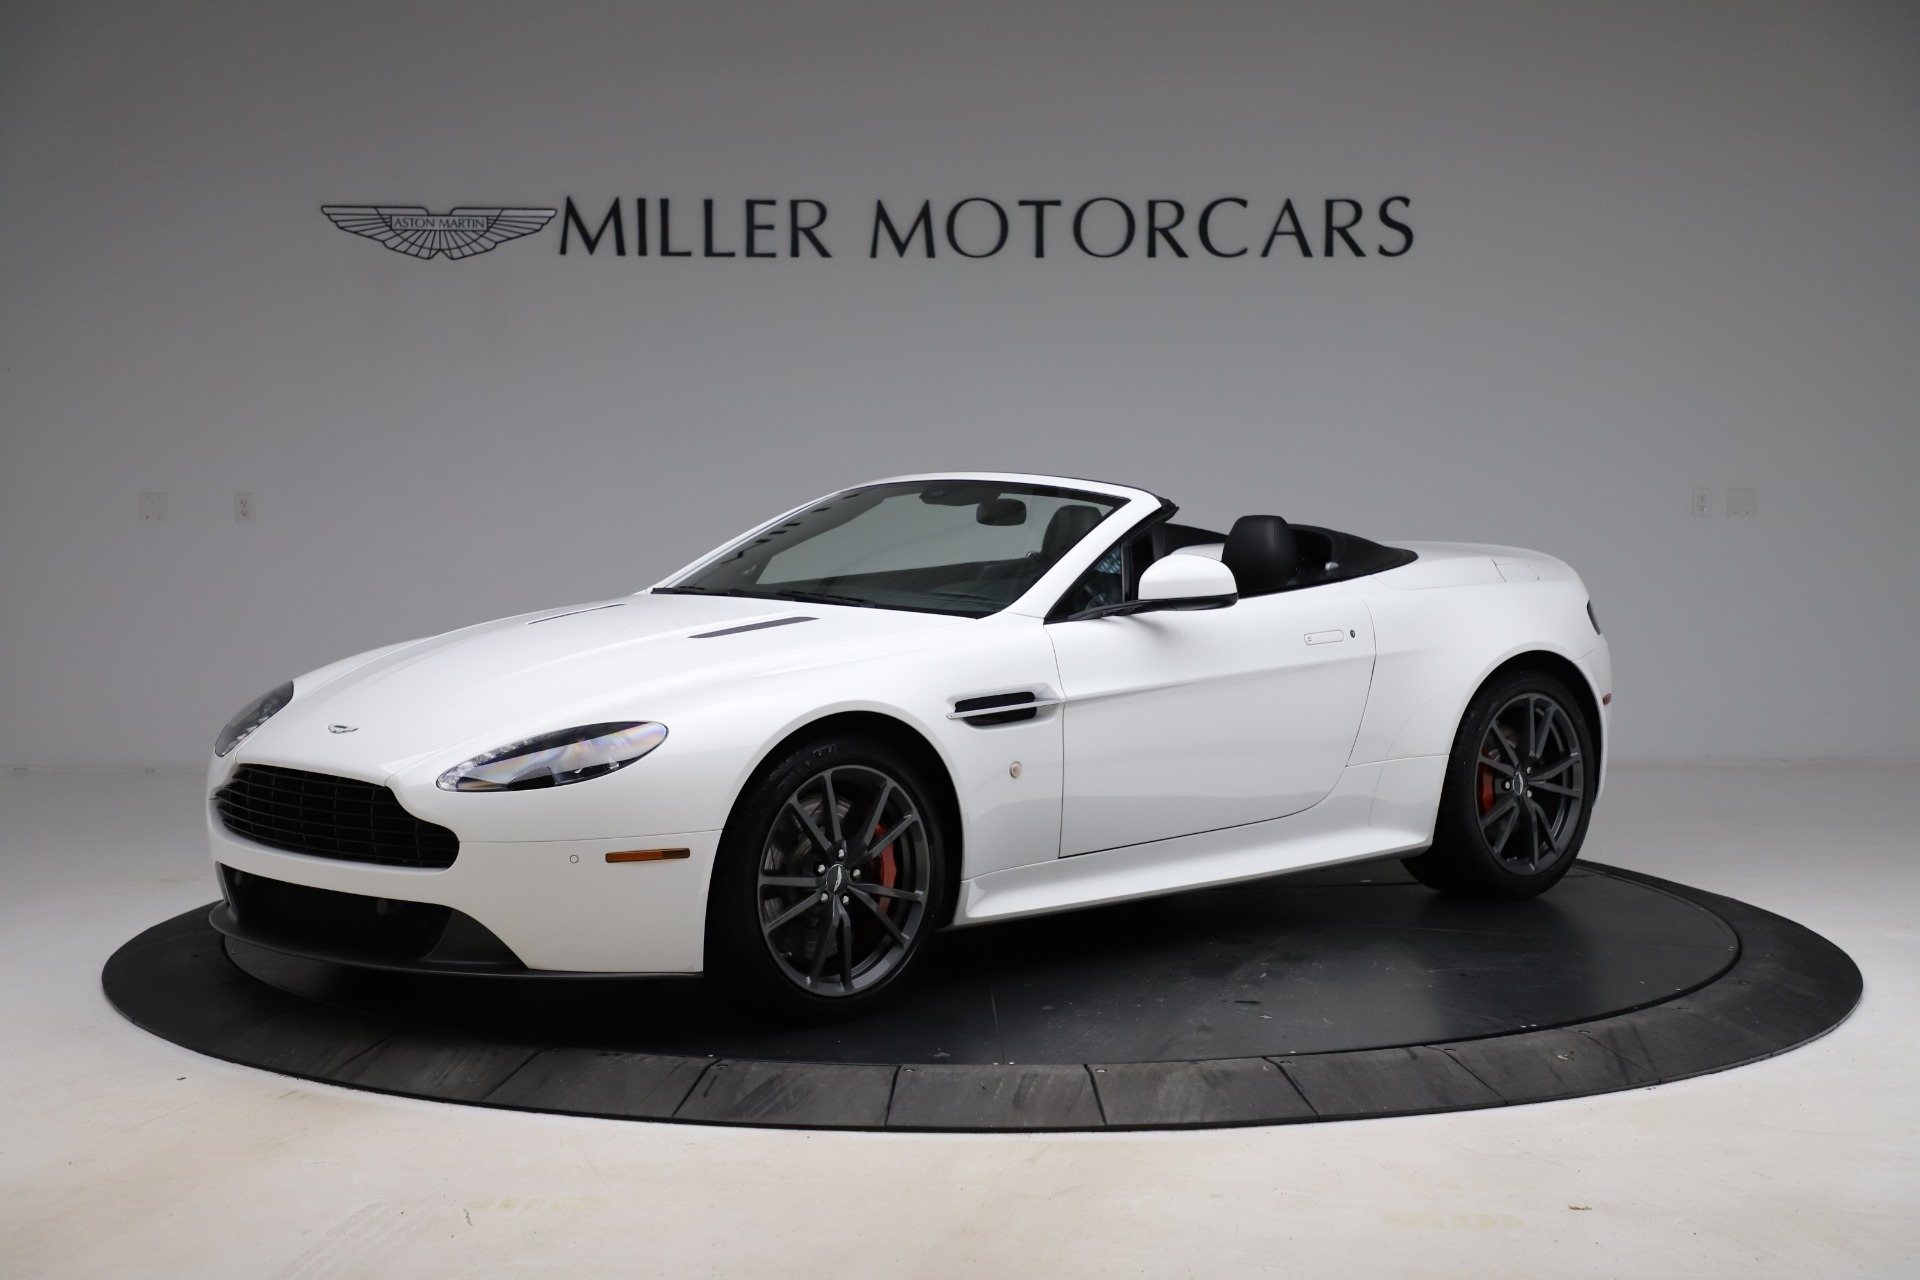 New 2015 Aston Martin Vantage GT GT Roadster for sale Sold at Alfa Romeo of Greenwich in Greenwich CT 06830 1